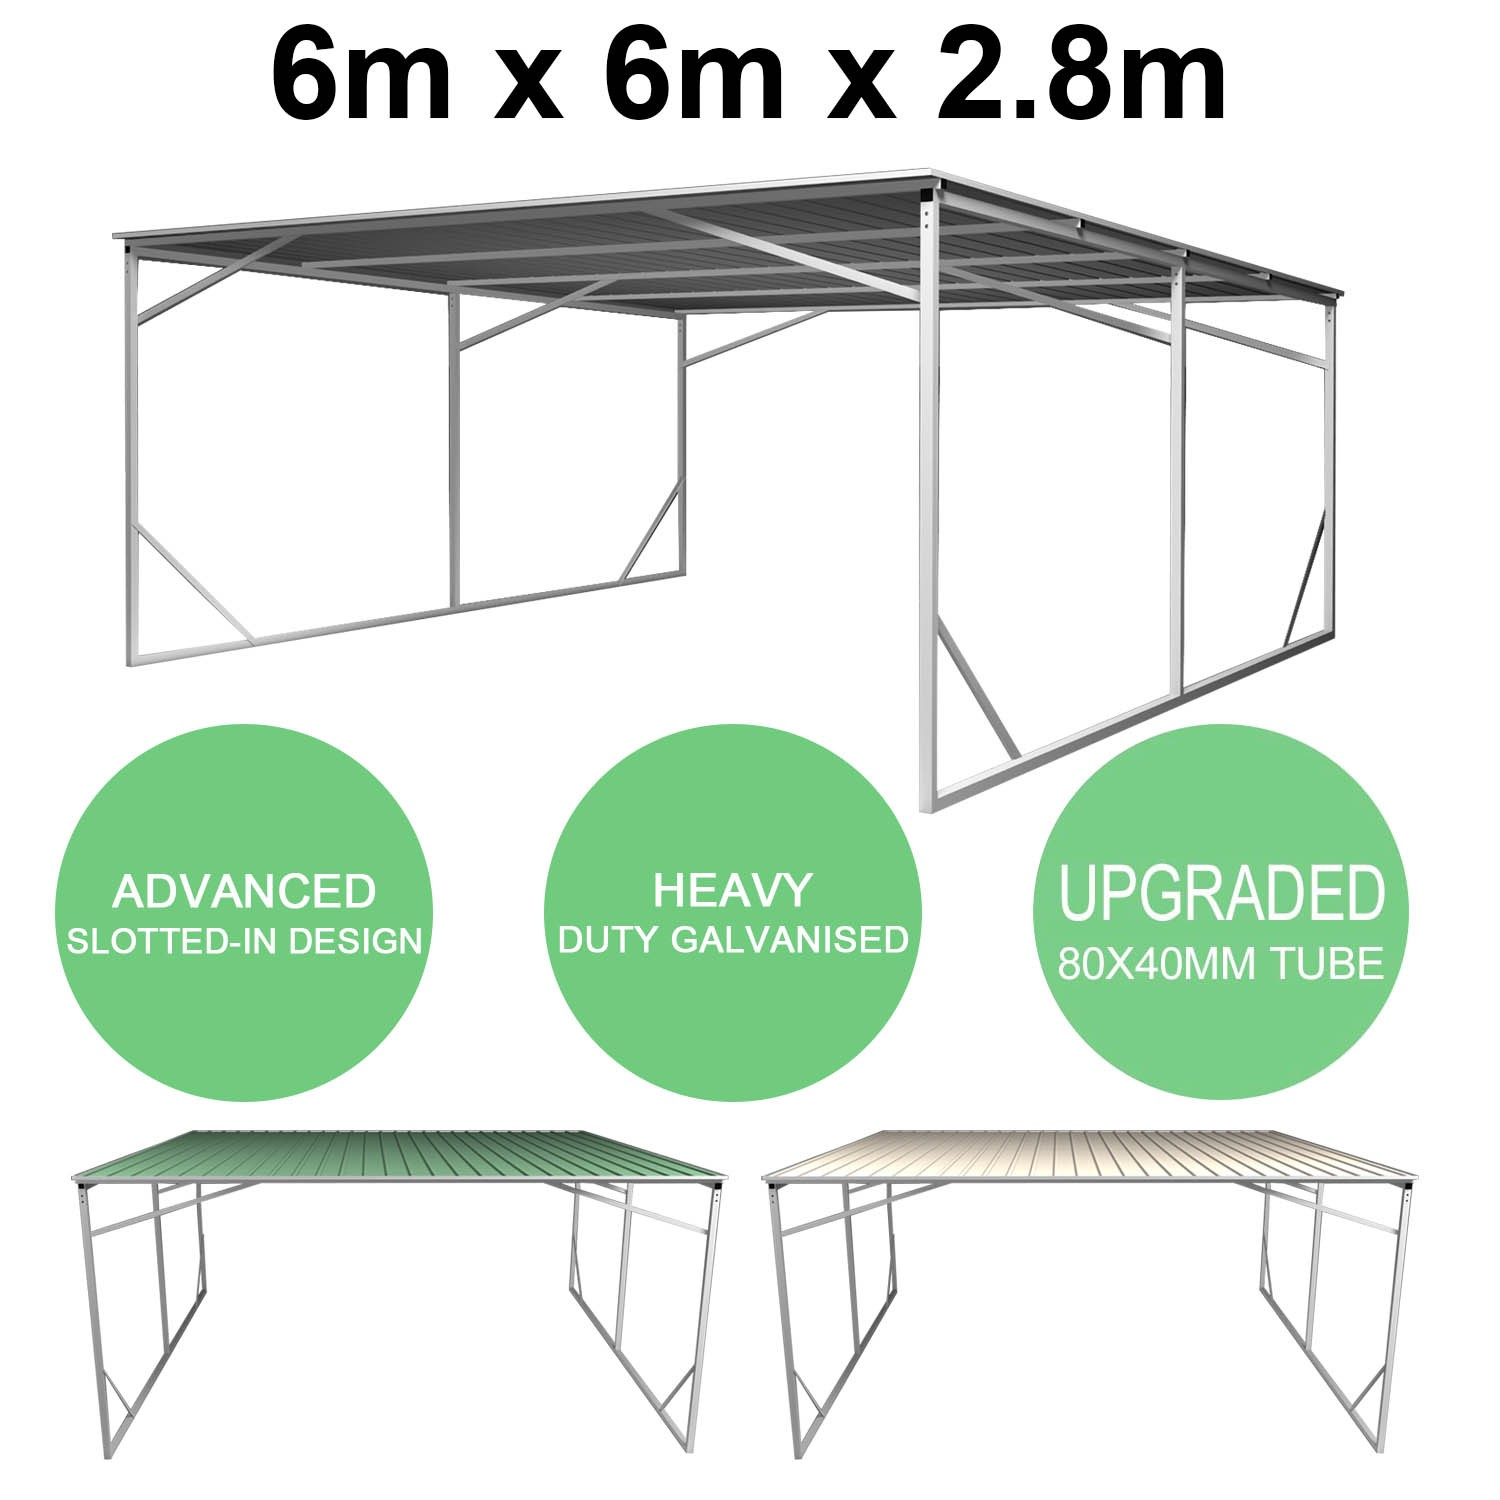 Zeichnung Carport Carport 6m X 6m Vehicle Shelter Skillion Steel Double Carport Plus 80x40mm Tube